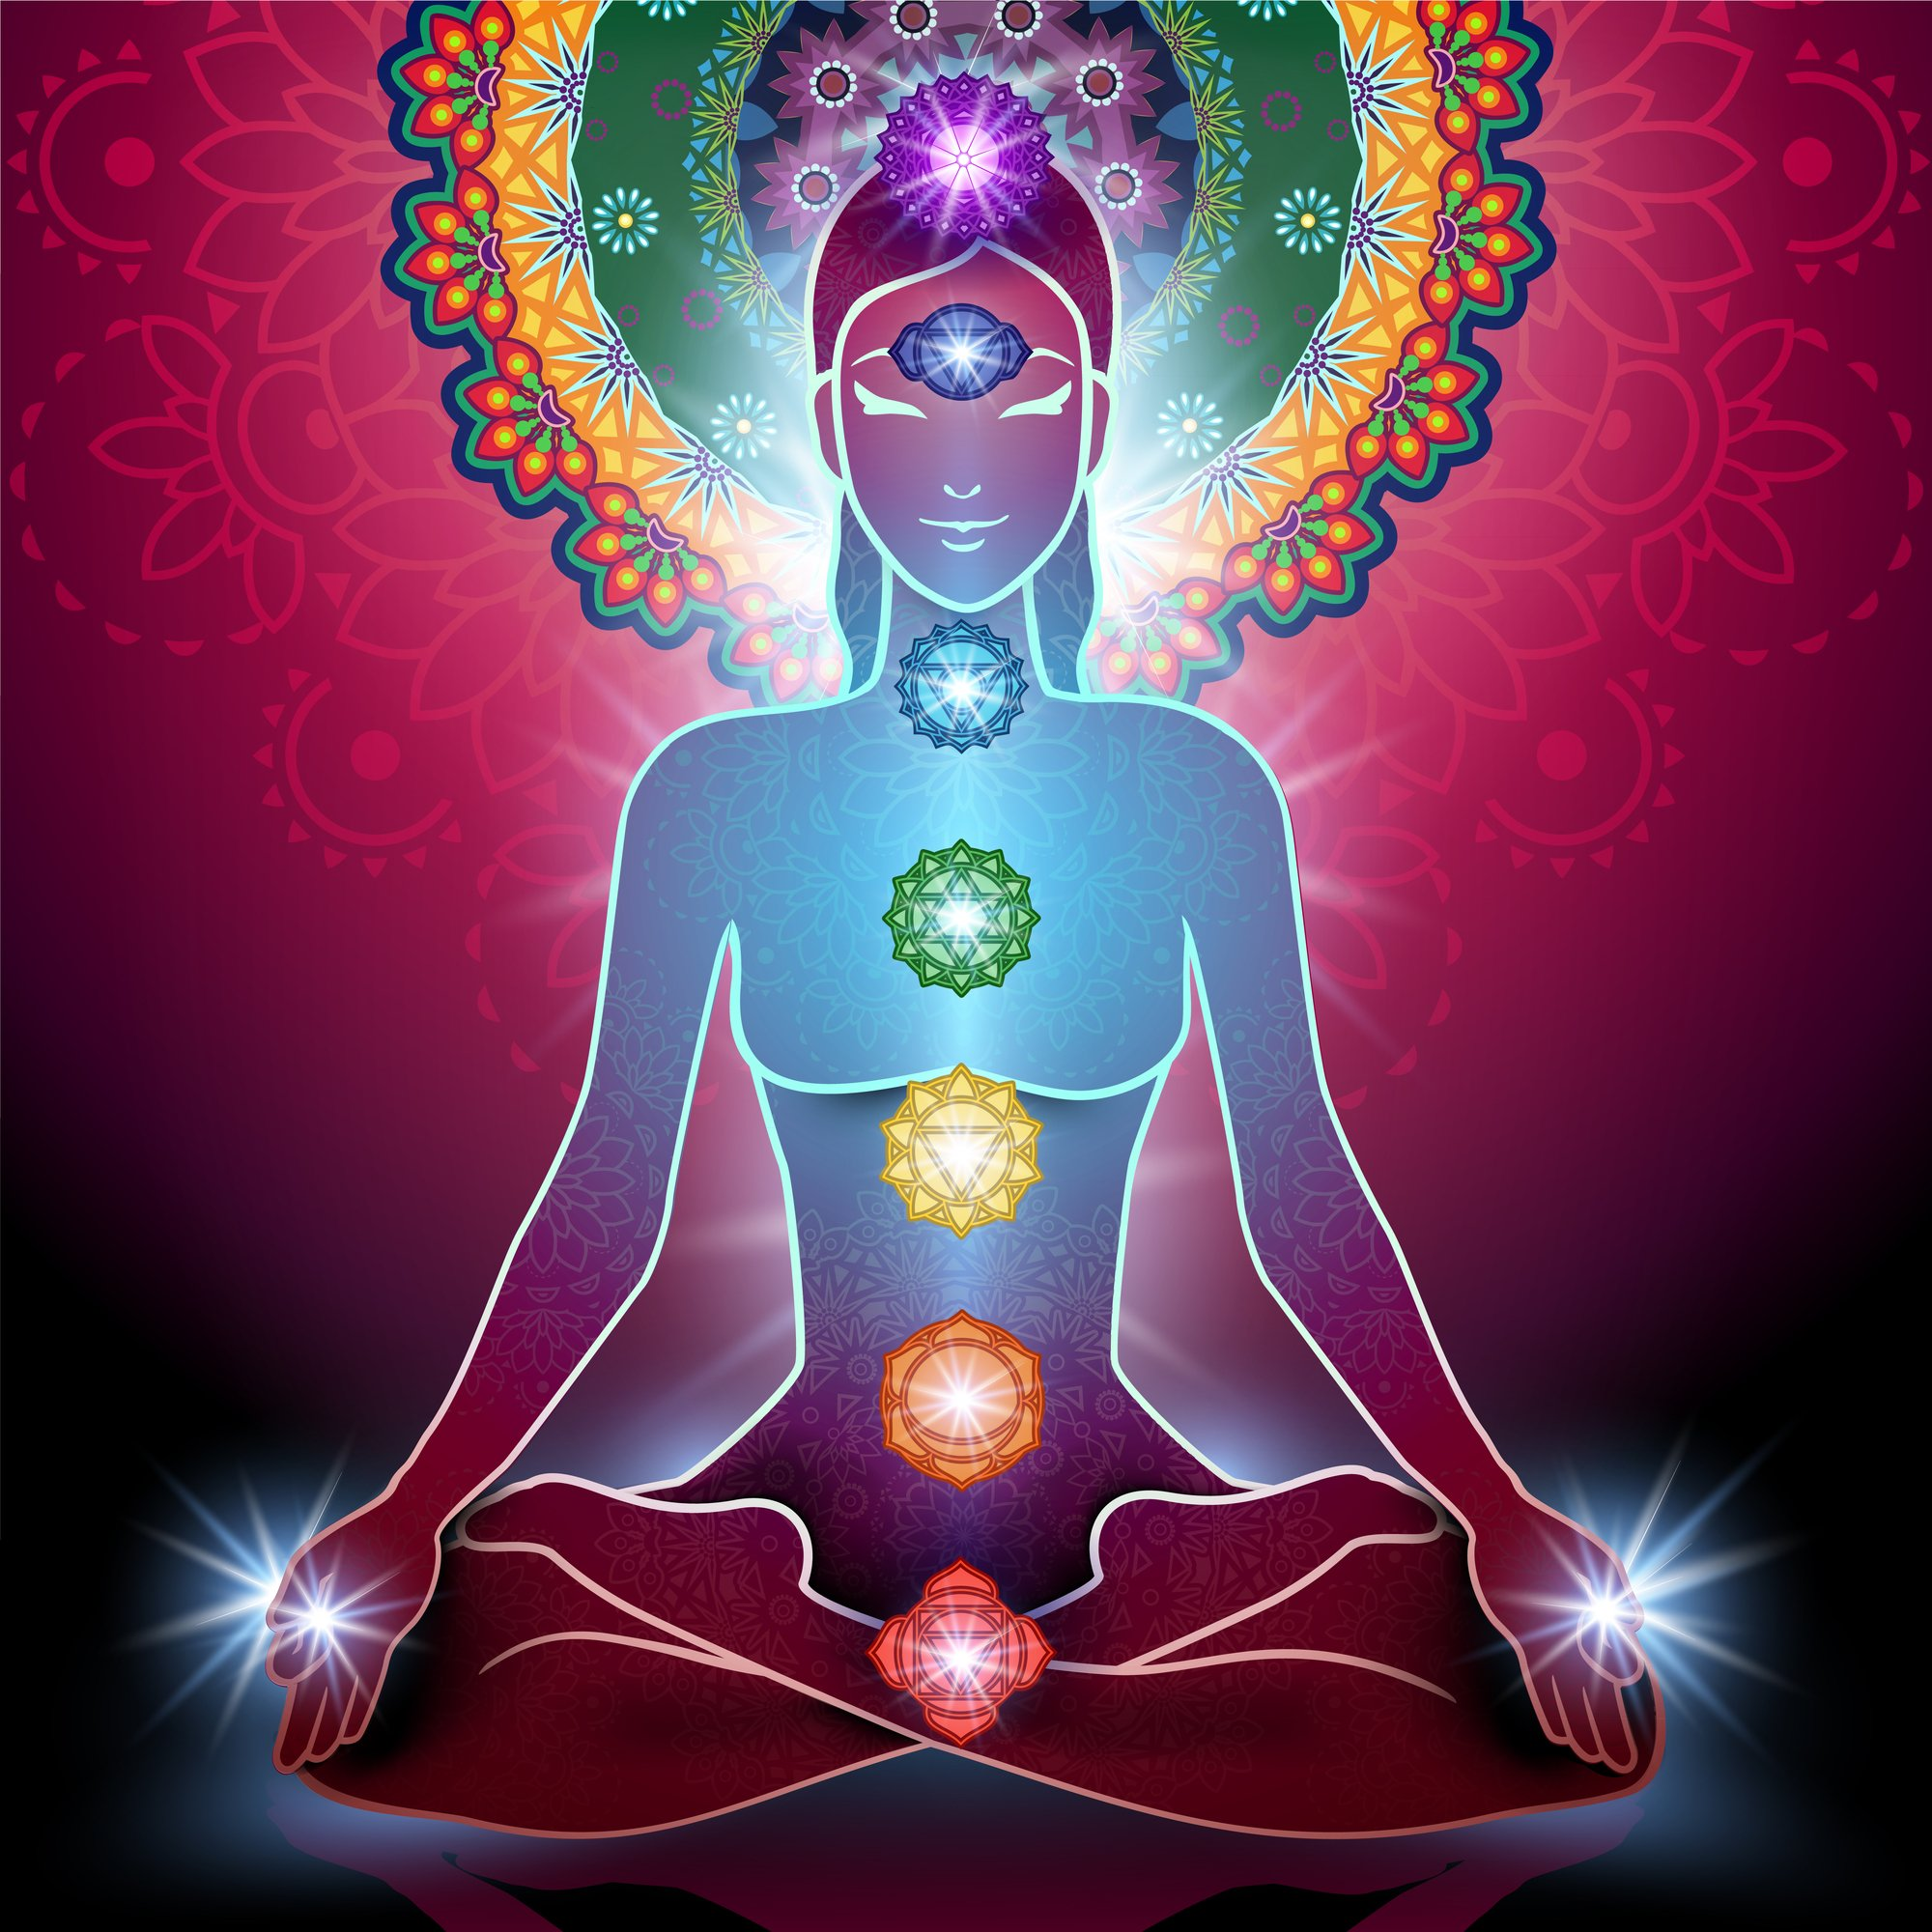 kundalini awakening illustration